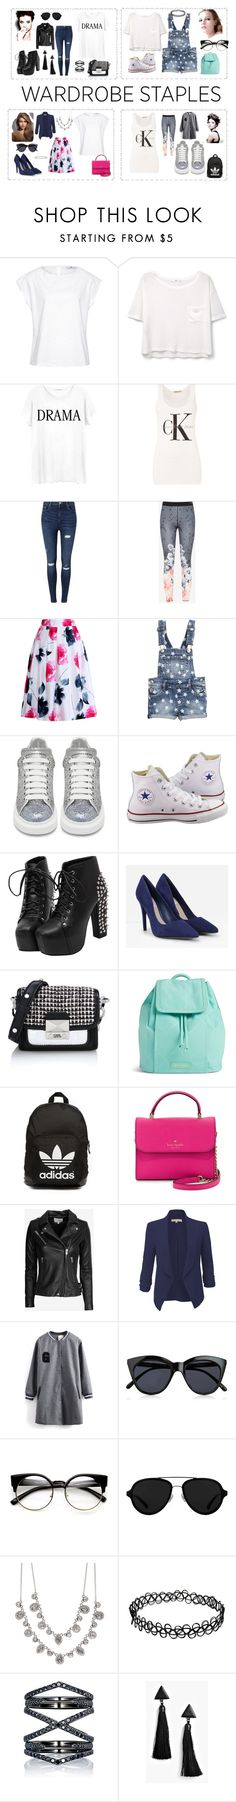 """""""Wardrobe Staple: White T-Shirt"""" by samanta-samulyte on Polyvore featuring Hahn, MANGO, Junk Food Clothing, Calvin Klein, Miss Selfridge, Ted Baker, Relaxfeel, Alexander McQueen, Converse and CHARLES & KEITH"""